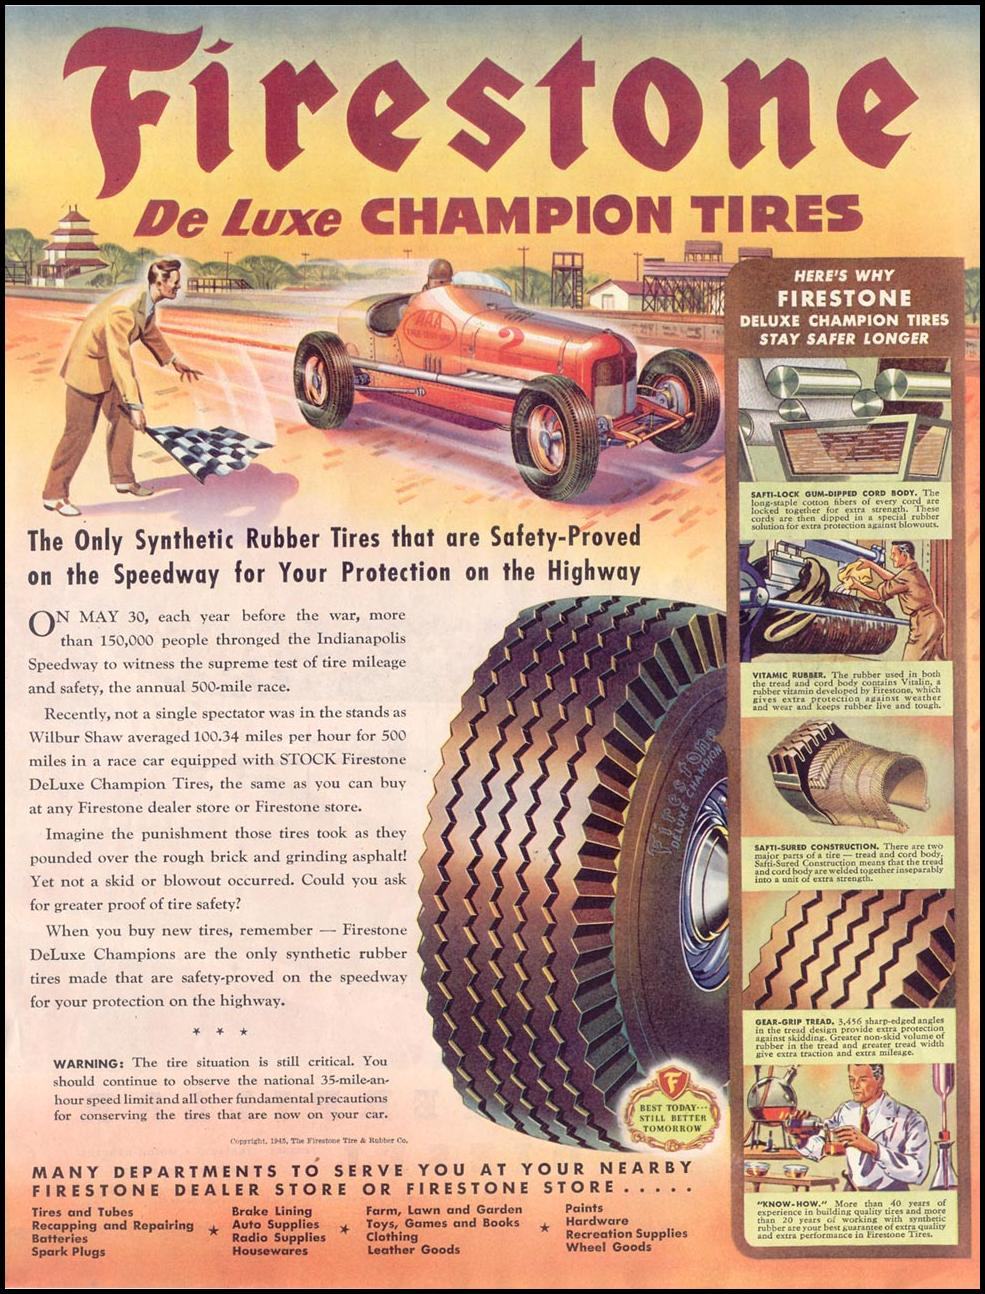 FIRESTONE DE LUXE CHAMPION TIRES SATURDAY EVENING POST 05/19/1945